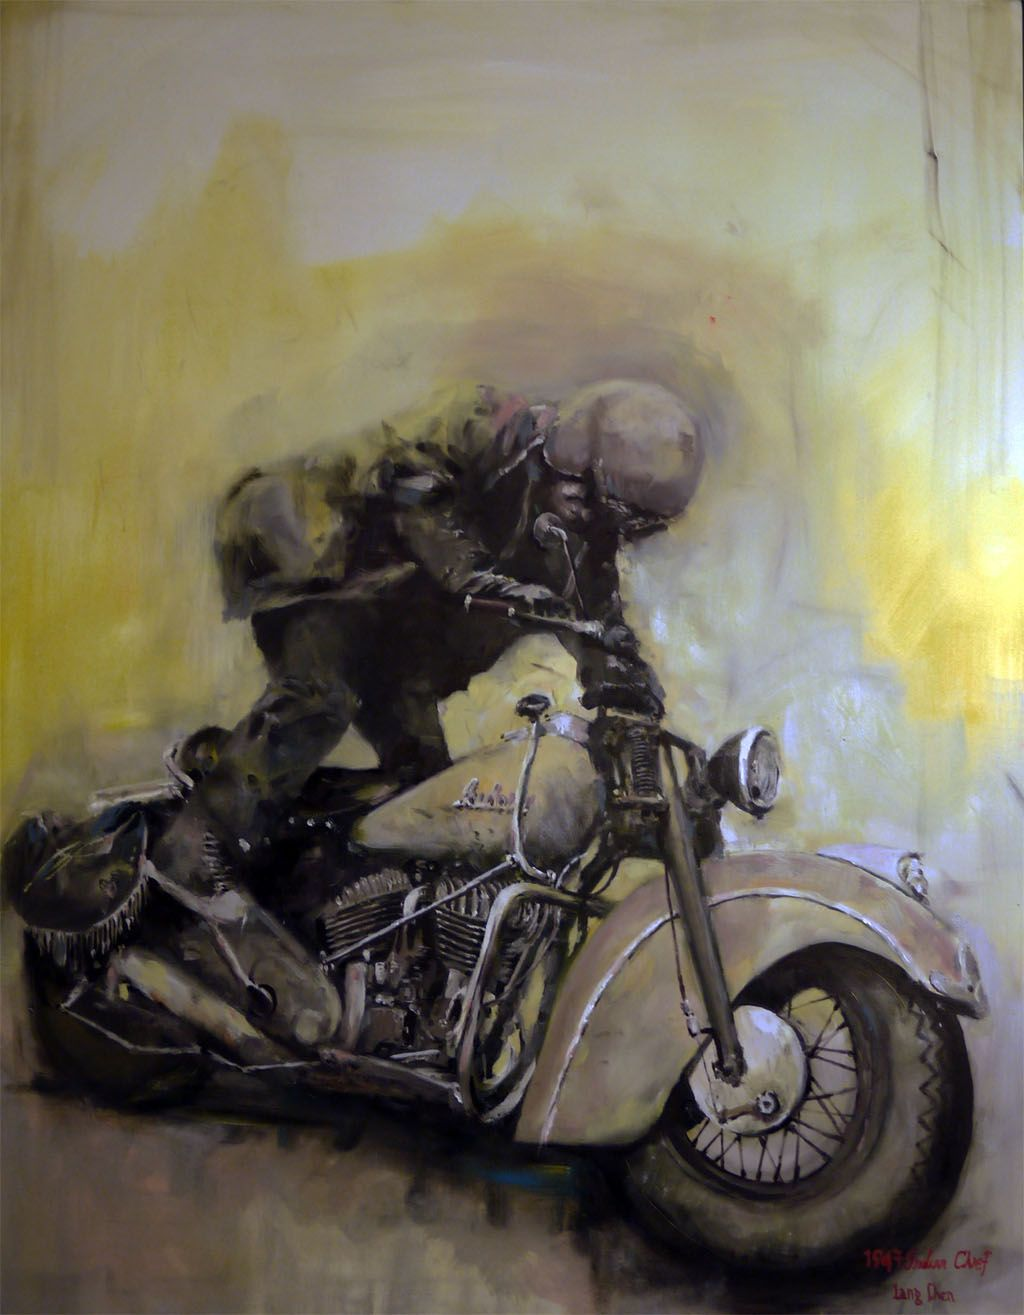 1947 Indian Chief Motorcycle Kick Start 2010 . Oil Paint